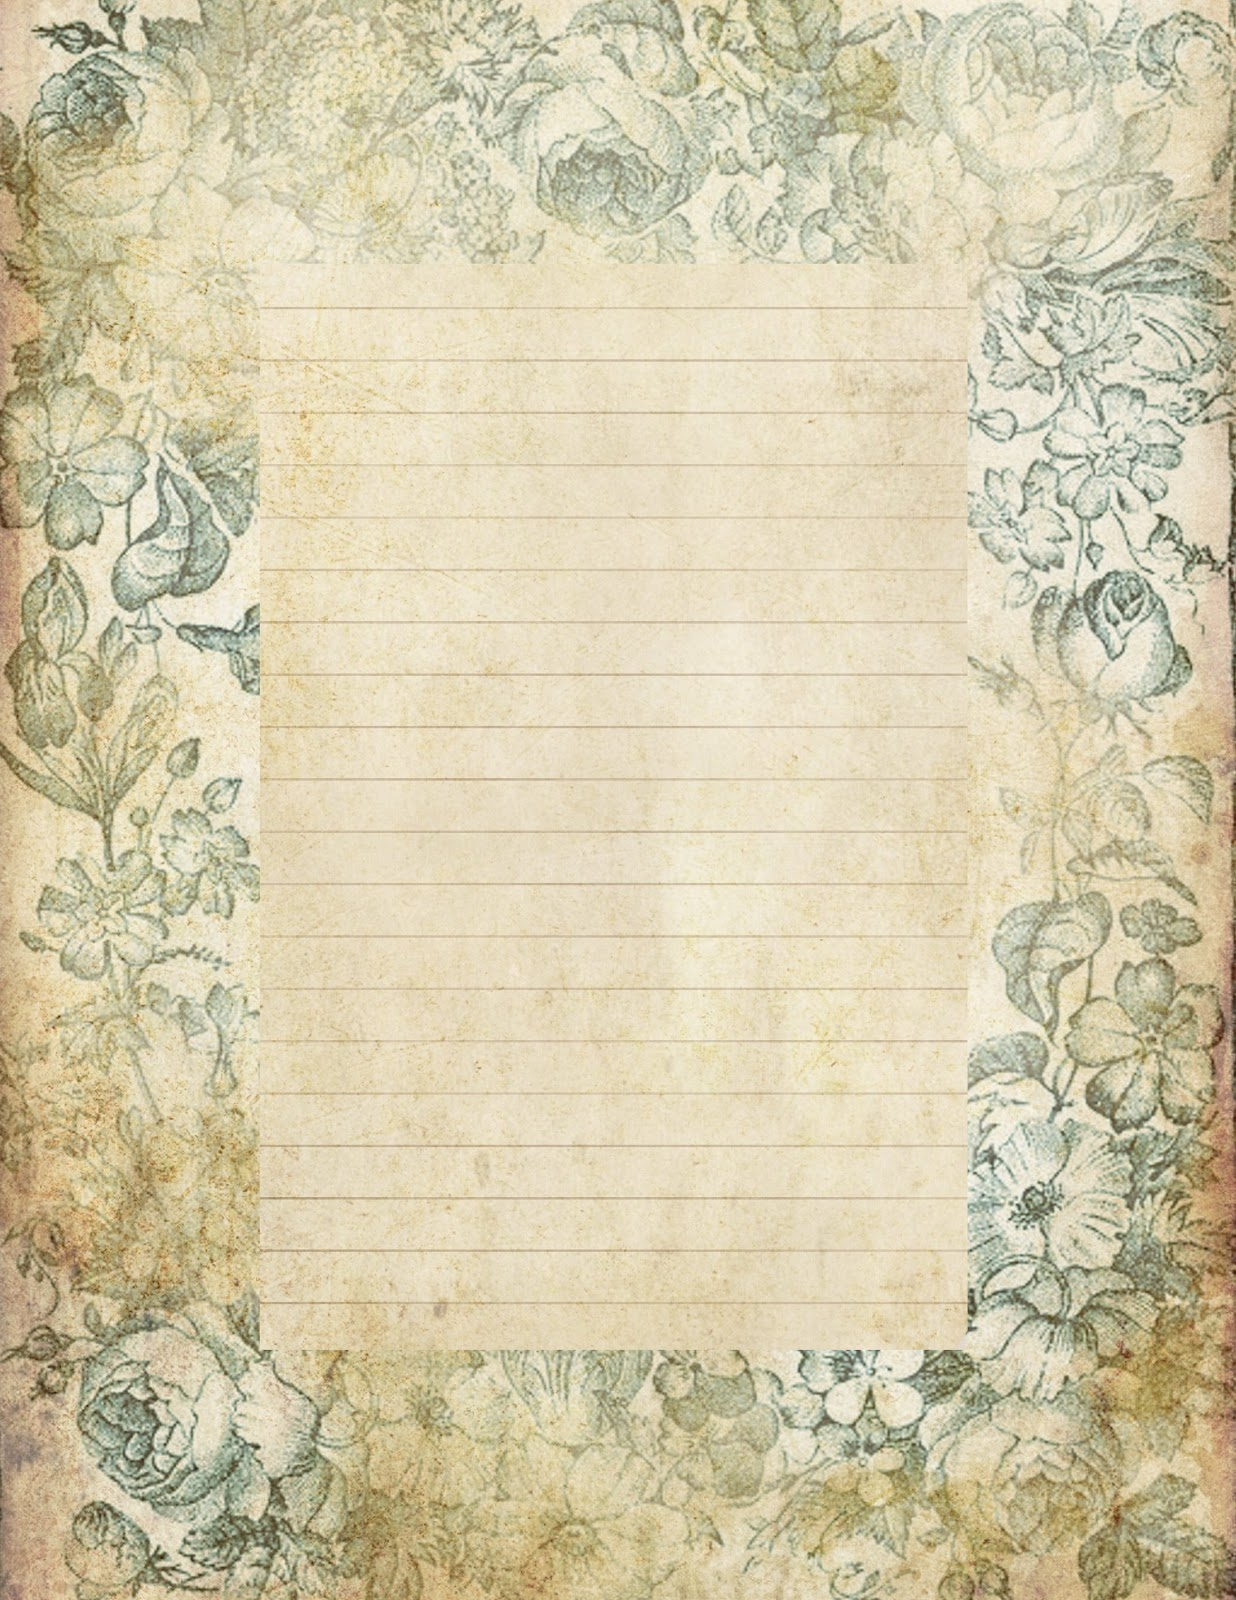 Lilac Lavender Antiqued lined paper Stationery 1236x1600